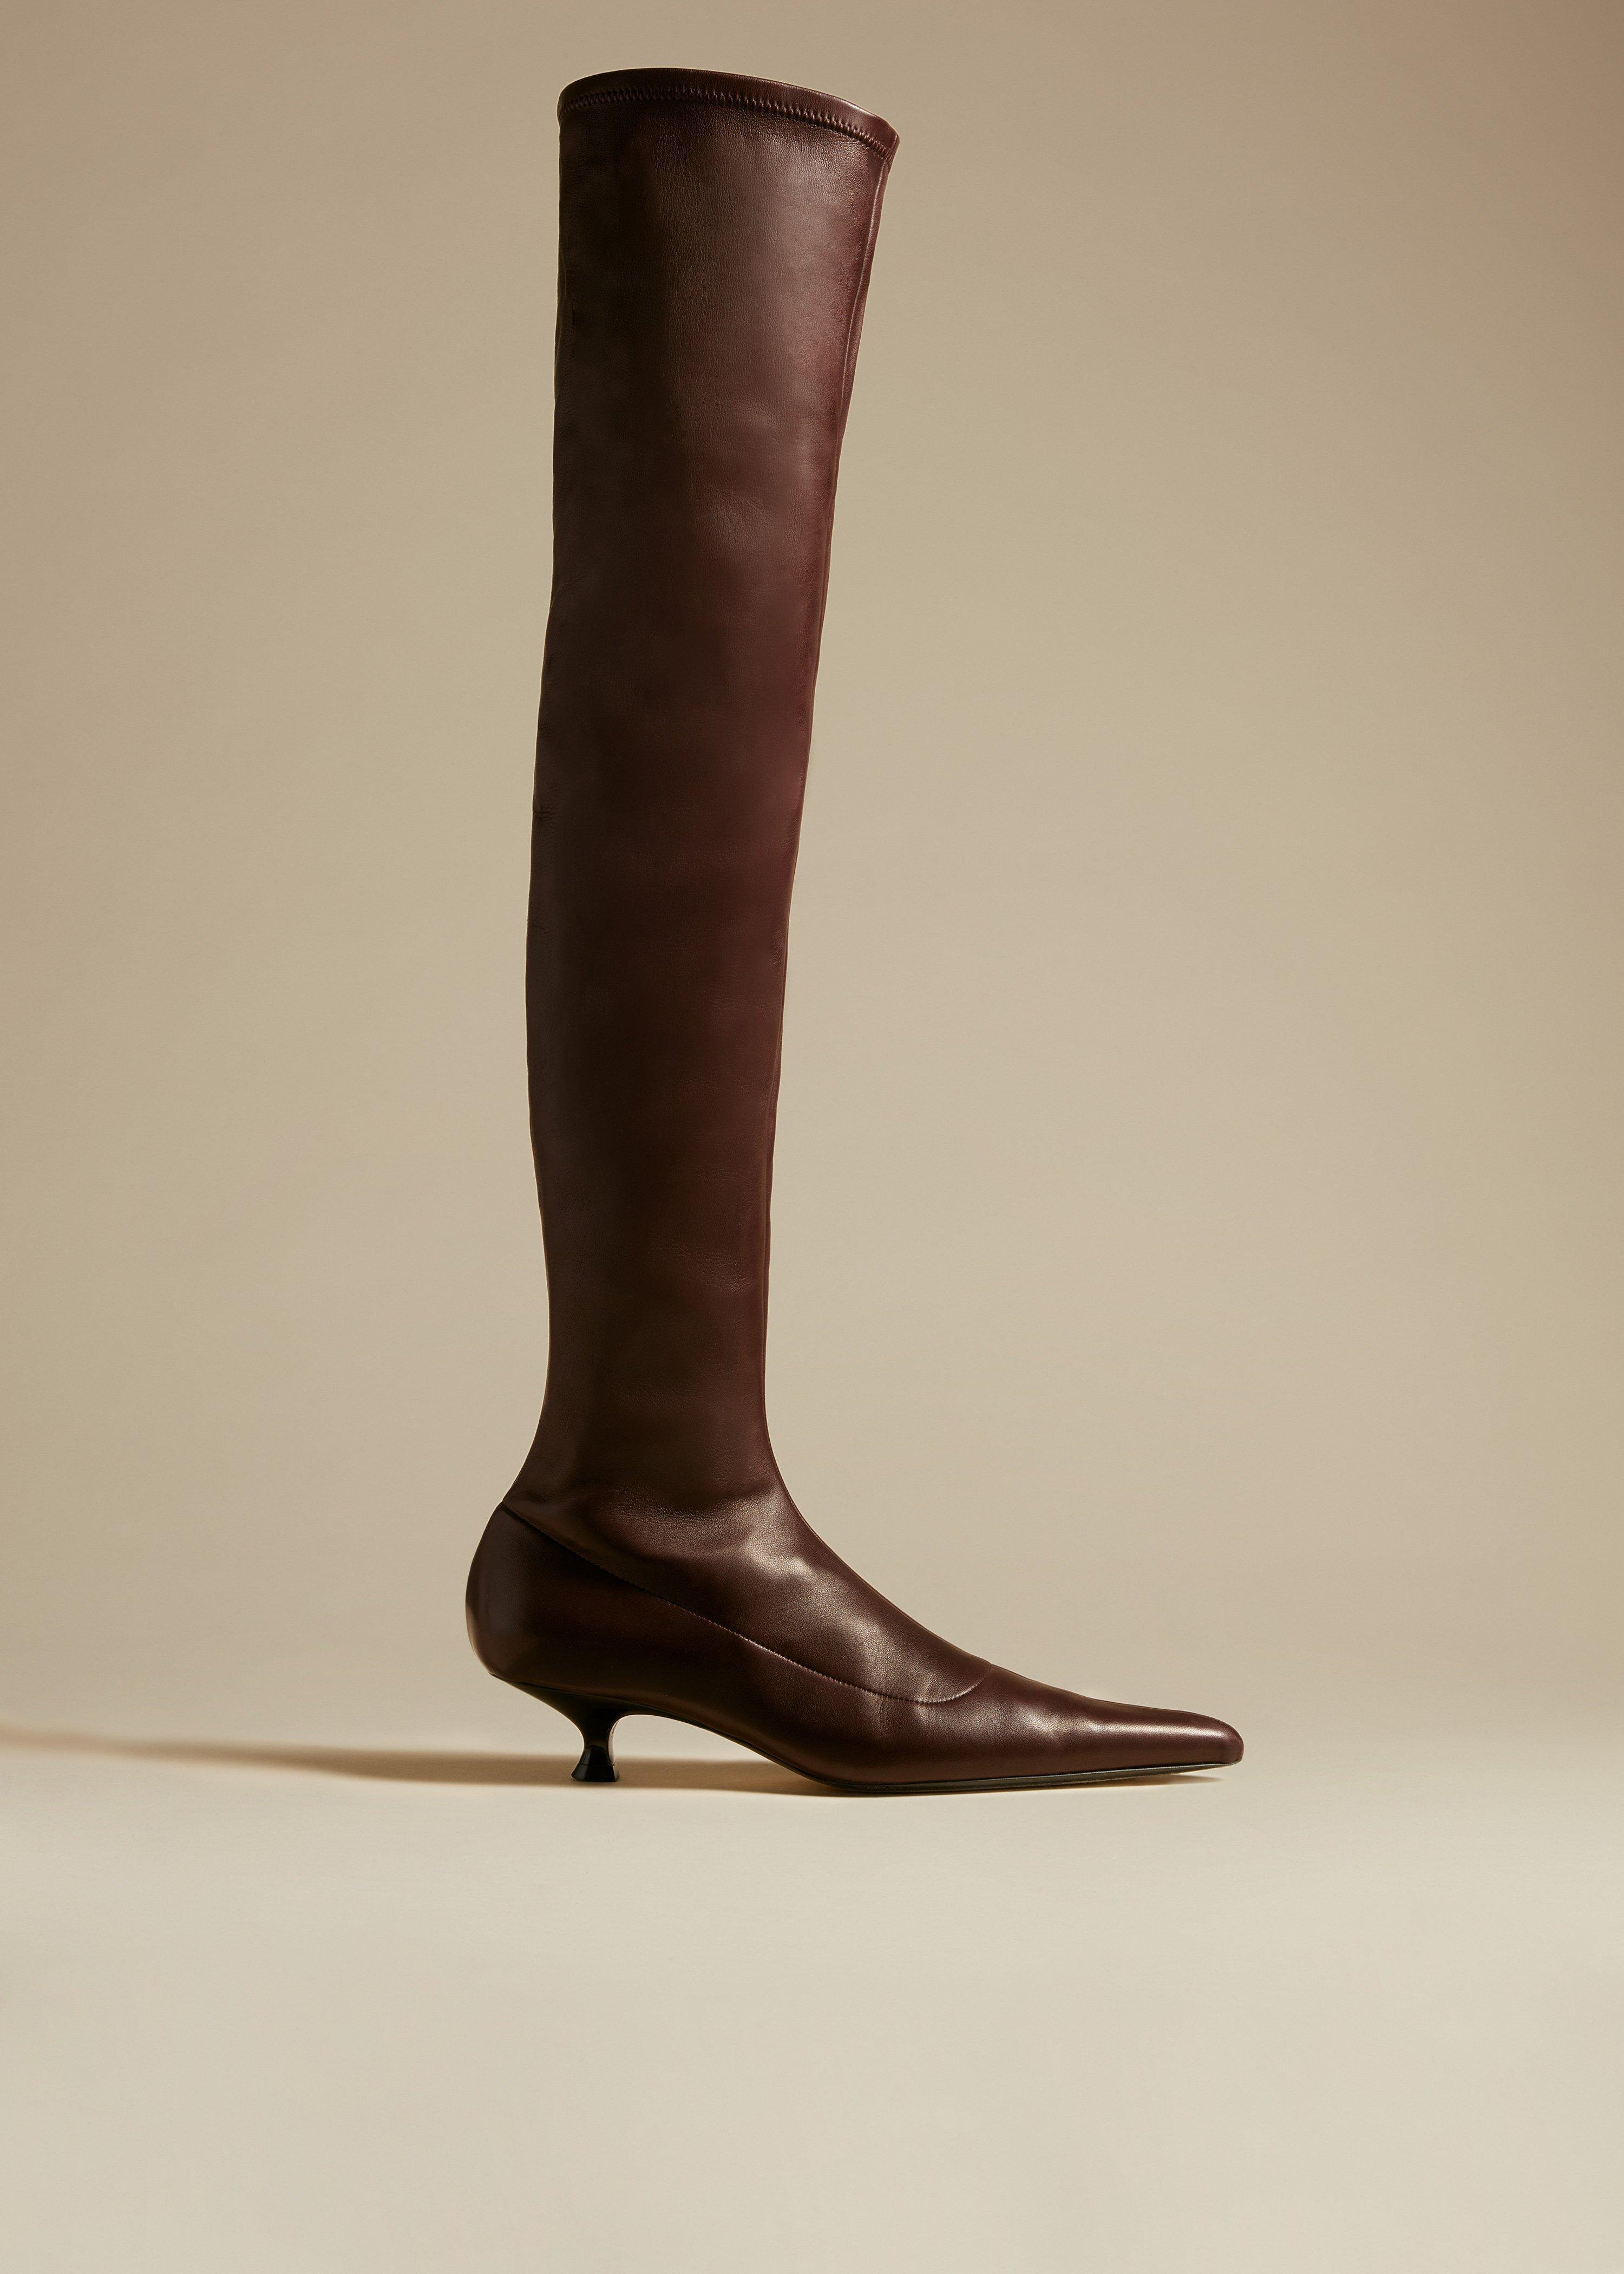 The Volos Over-the-Knee Boot in Bordeaux Leather